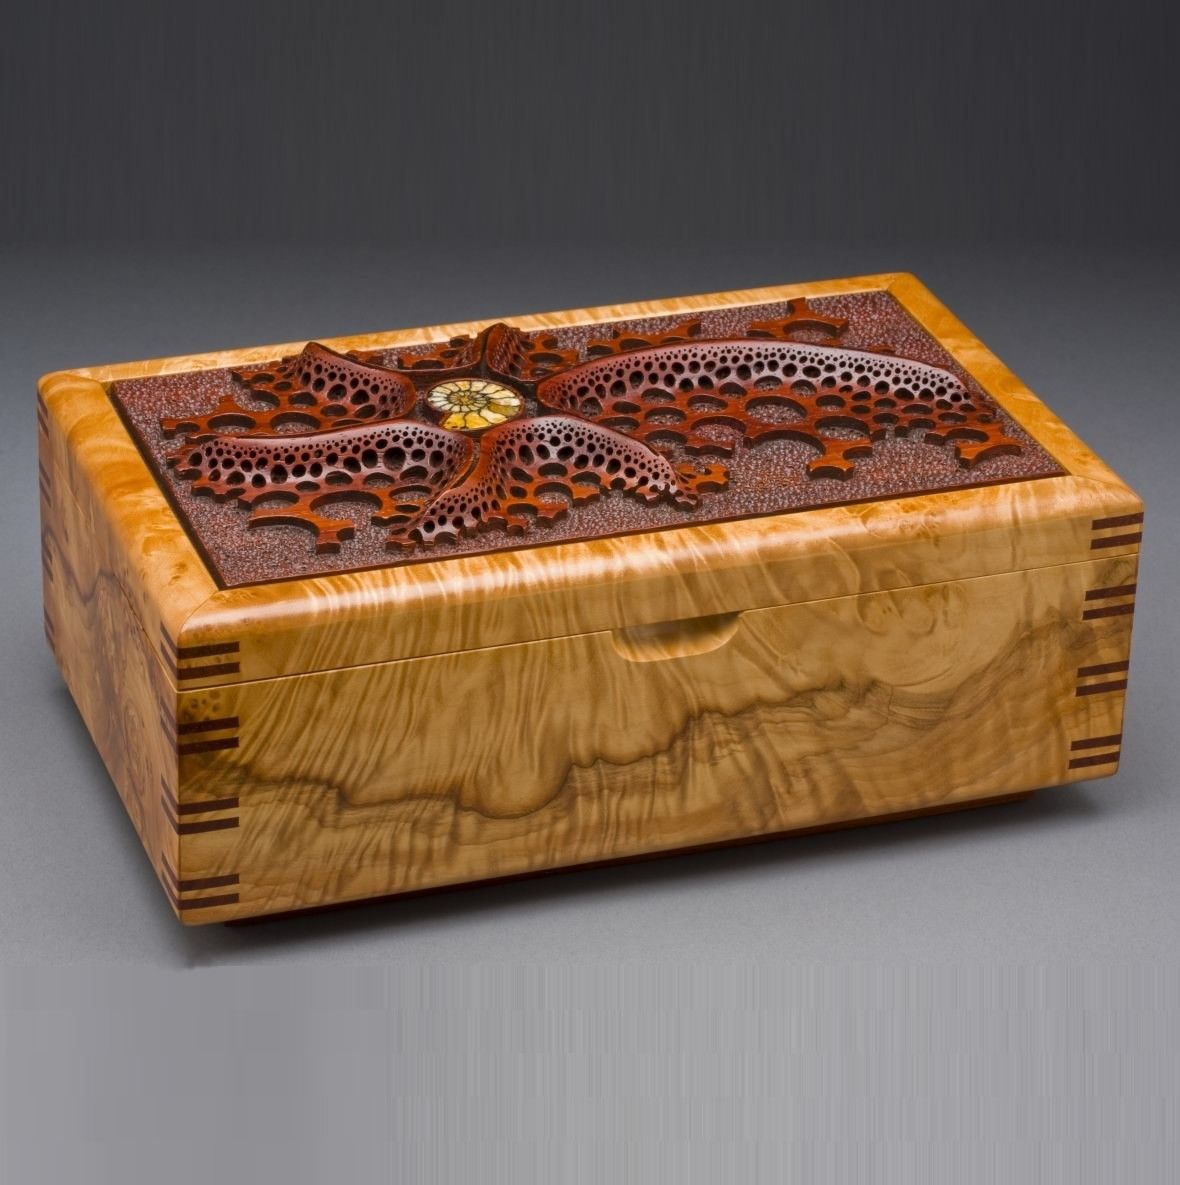 Asian Inspired Bedroom Furniture Hand Made Wood Jewelry Box Quot Ammonite Quot By Mark Doolittle